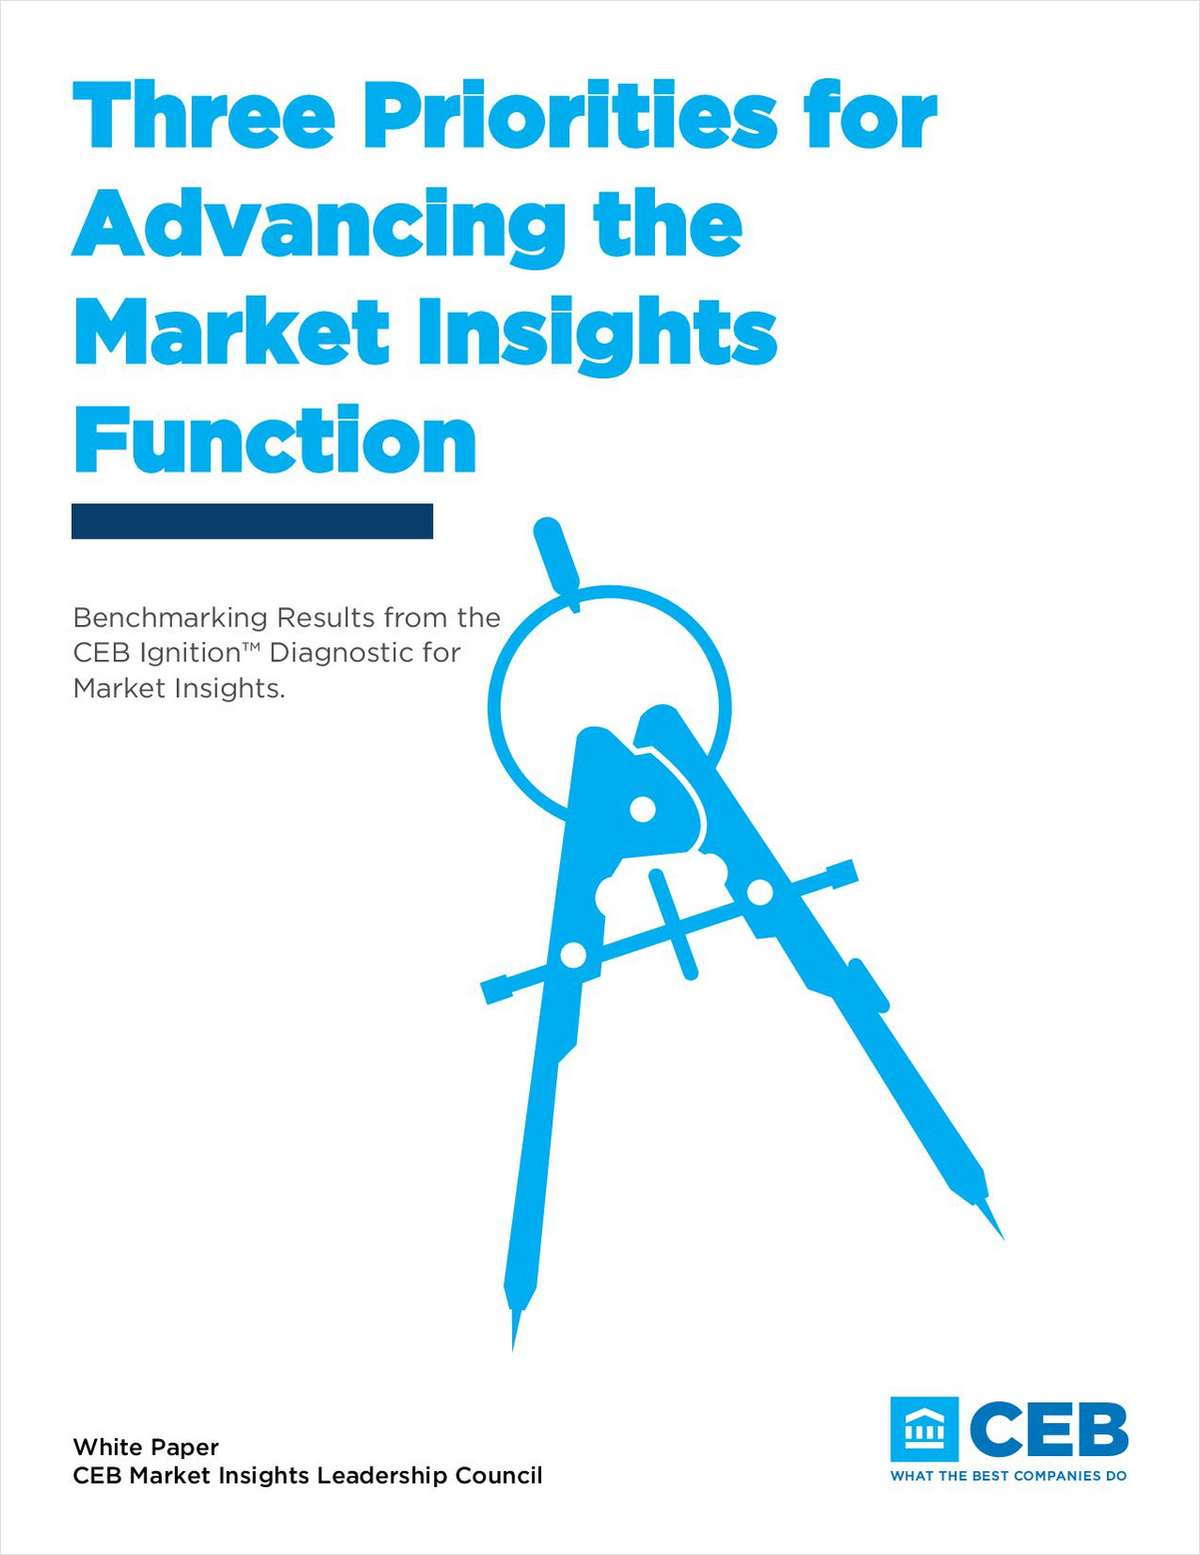 Three Priorities for Advancing the Market Insights Function